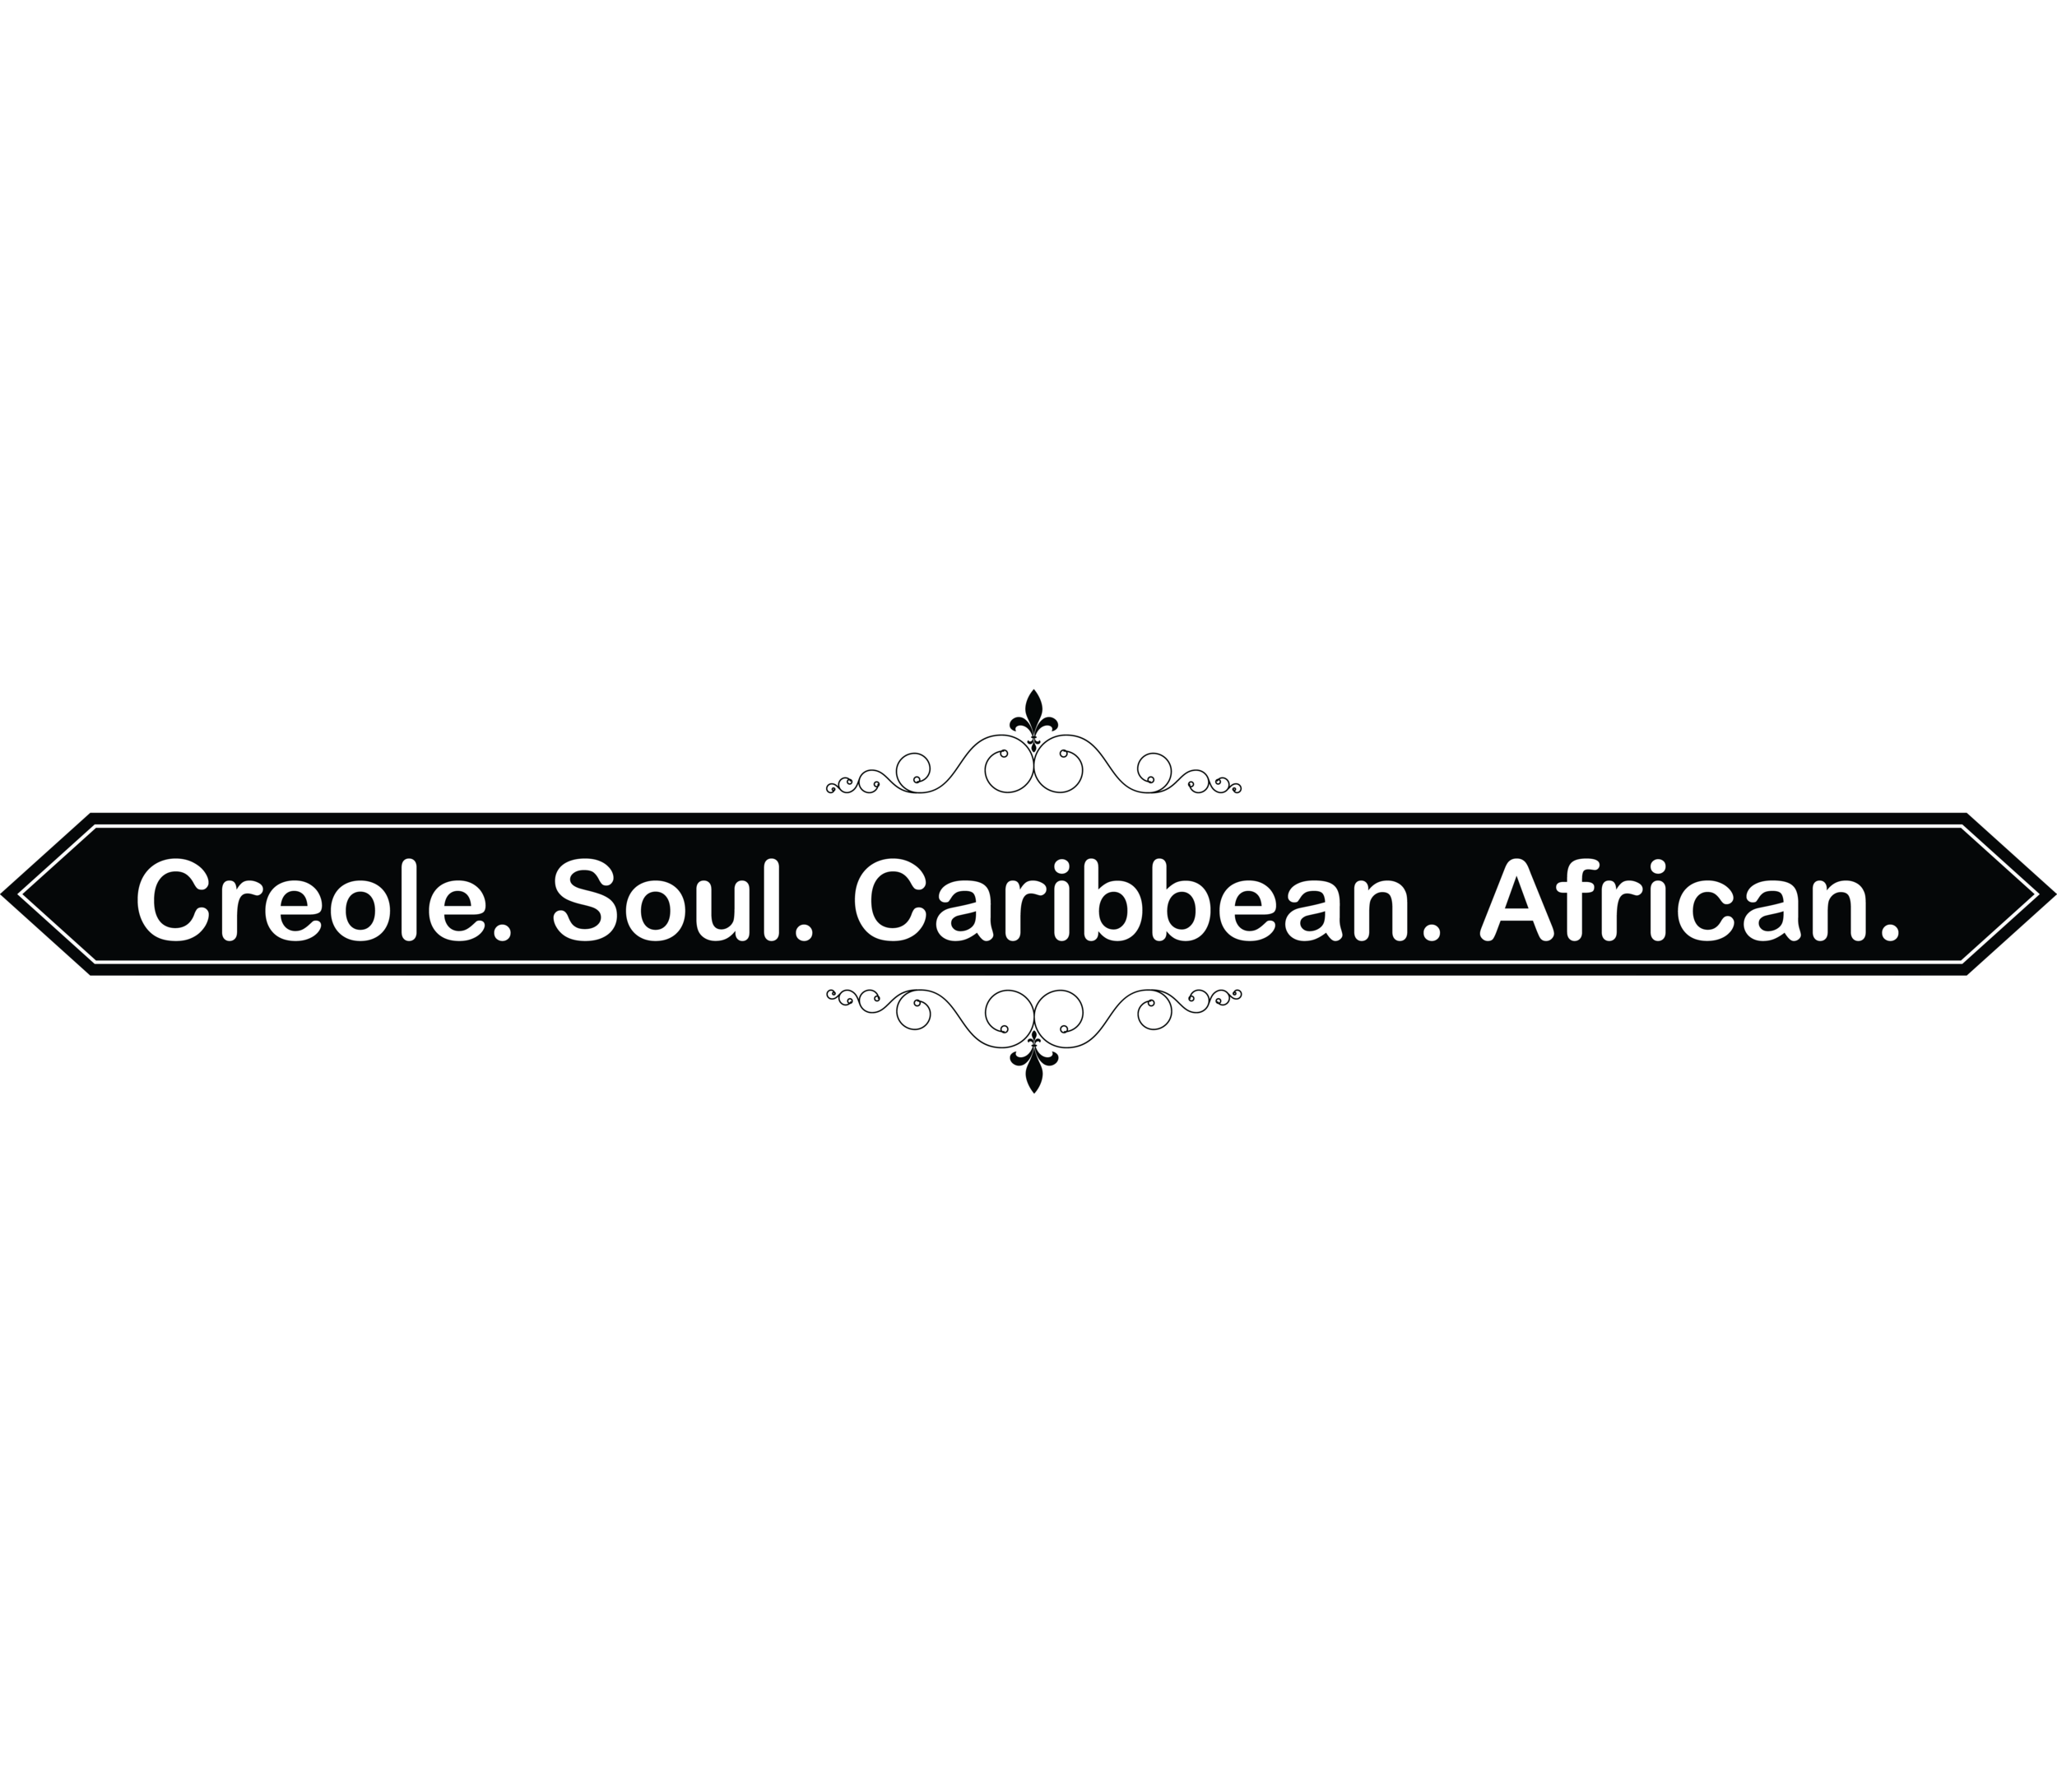 EatNOLACreoleSoulWhite.png